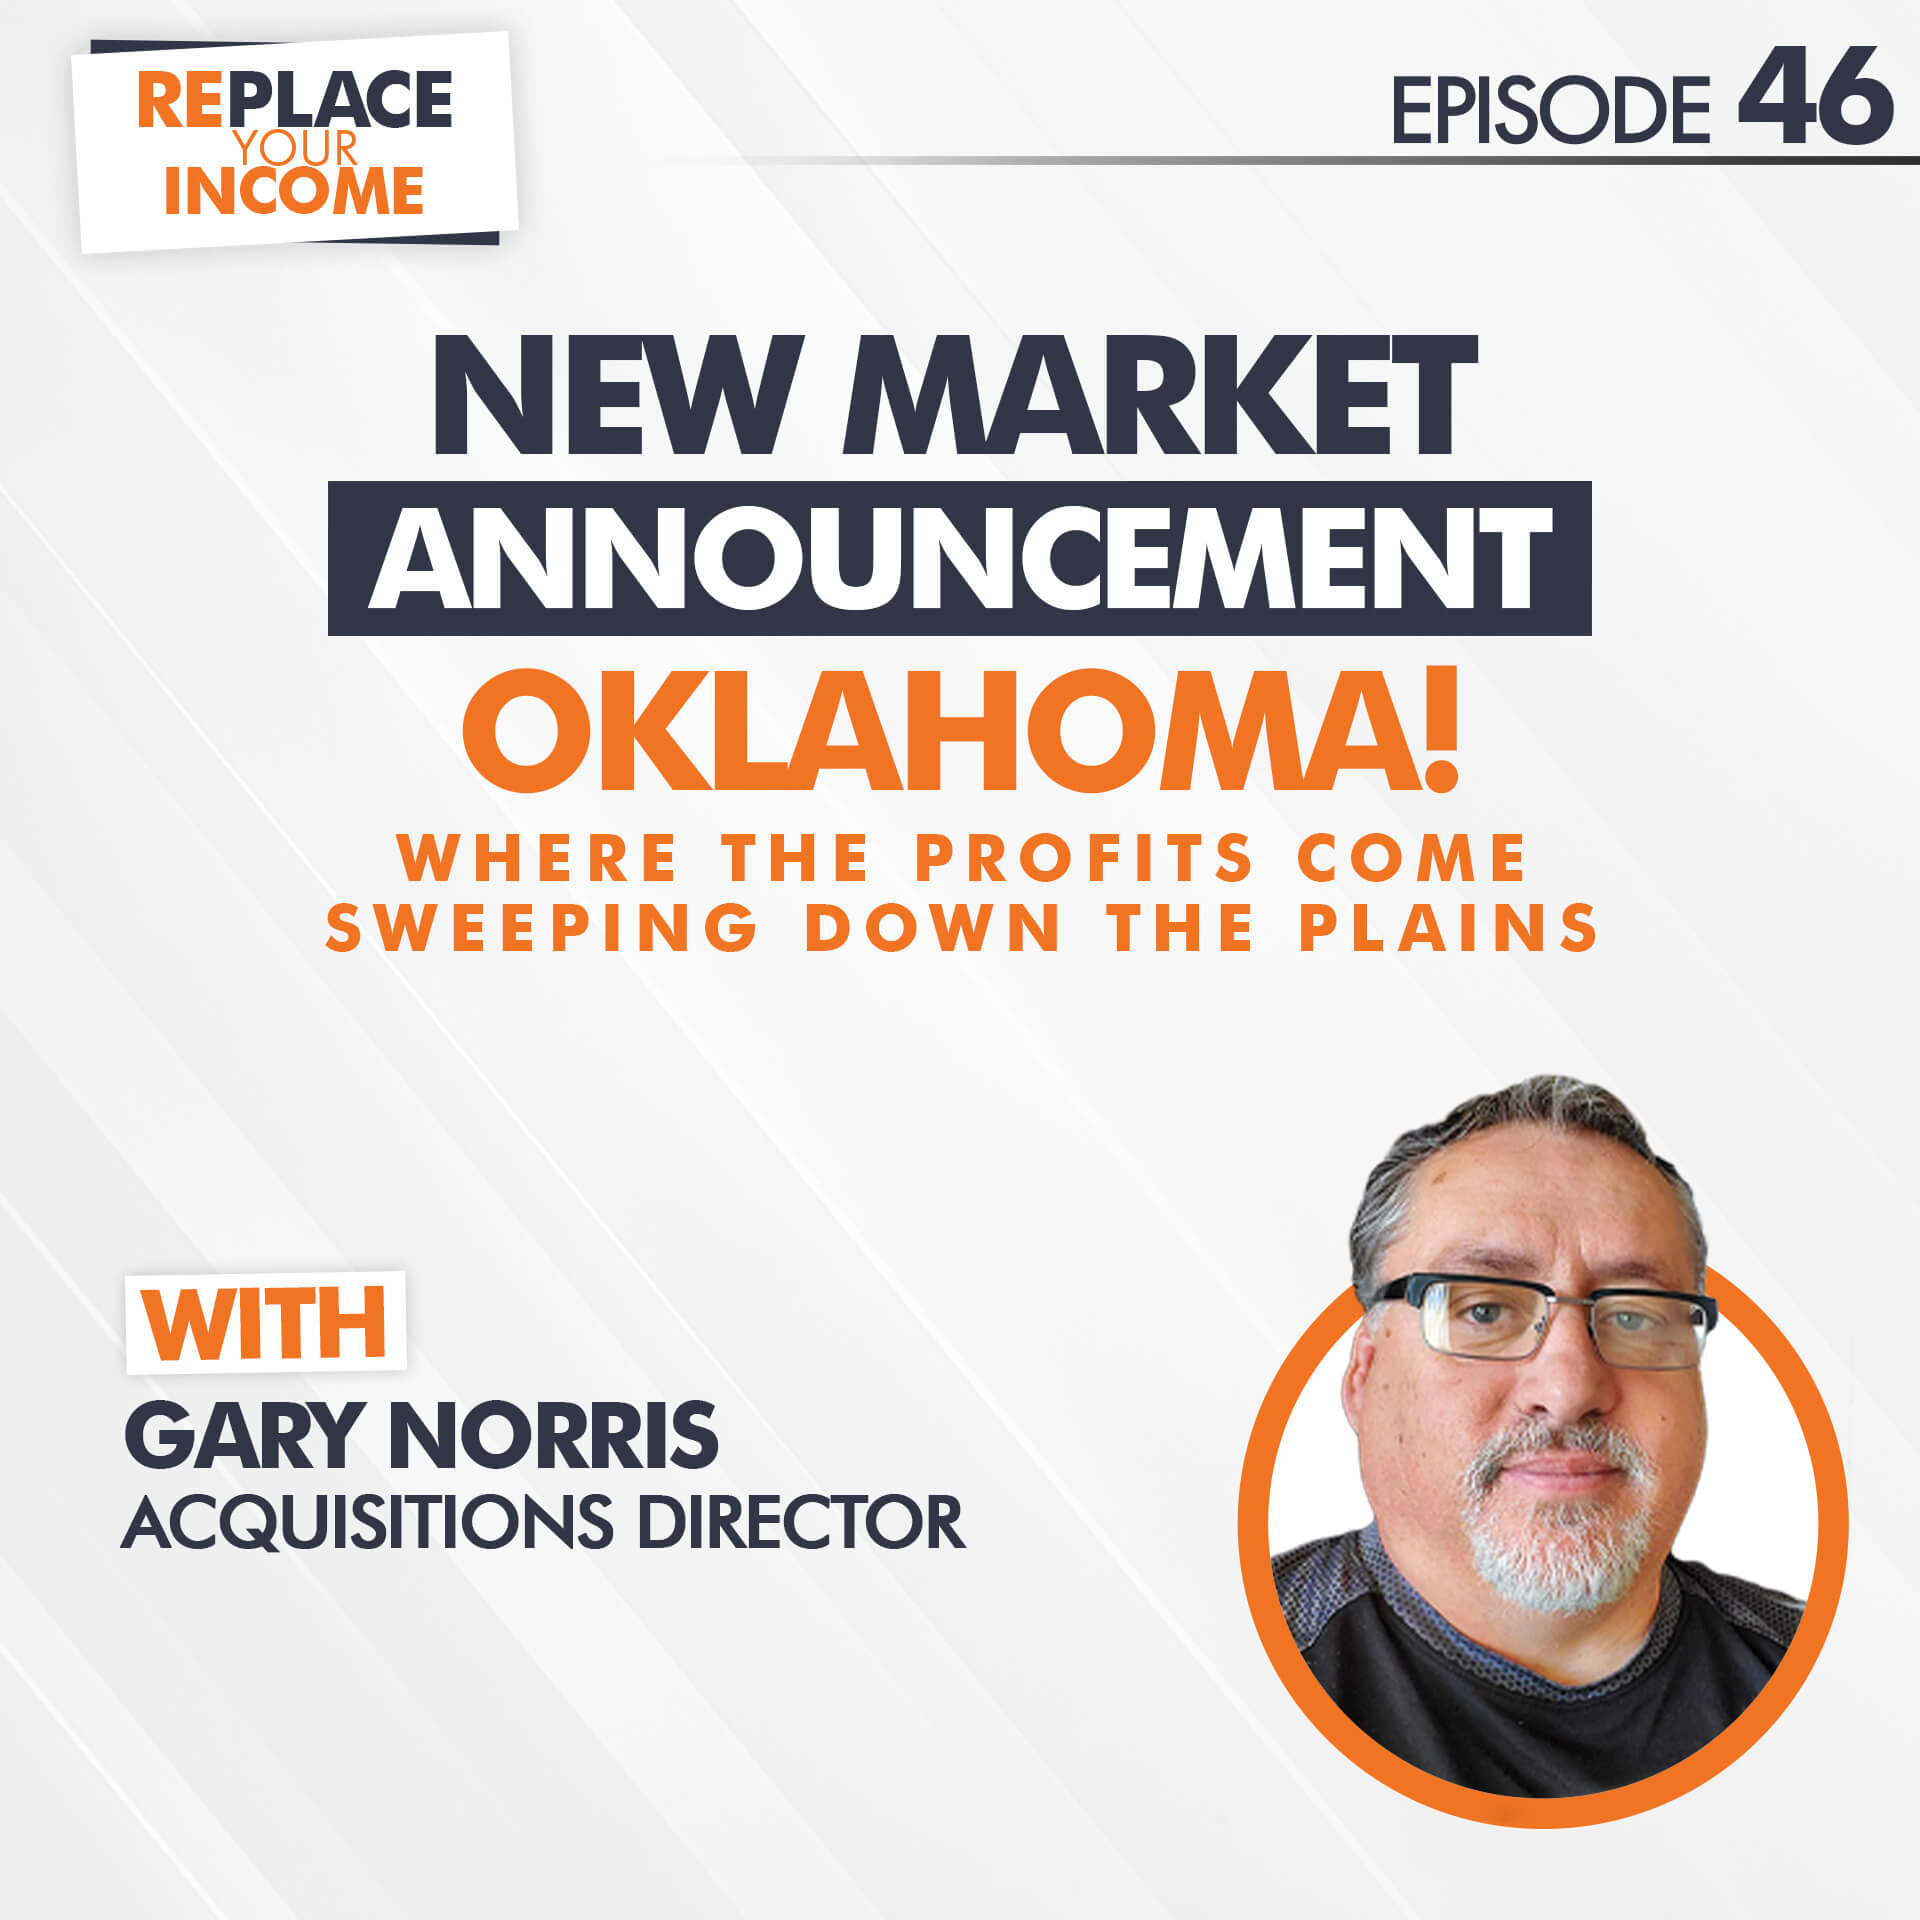 New Market Announcement - OKLAHOMA! Where The Profits Come Sweeping Down The Plains